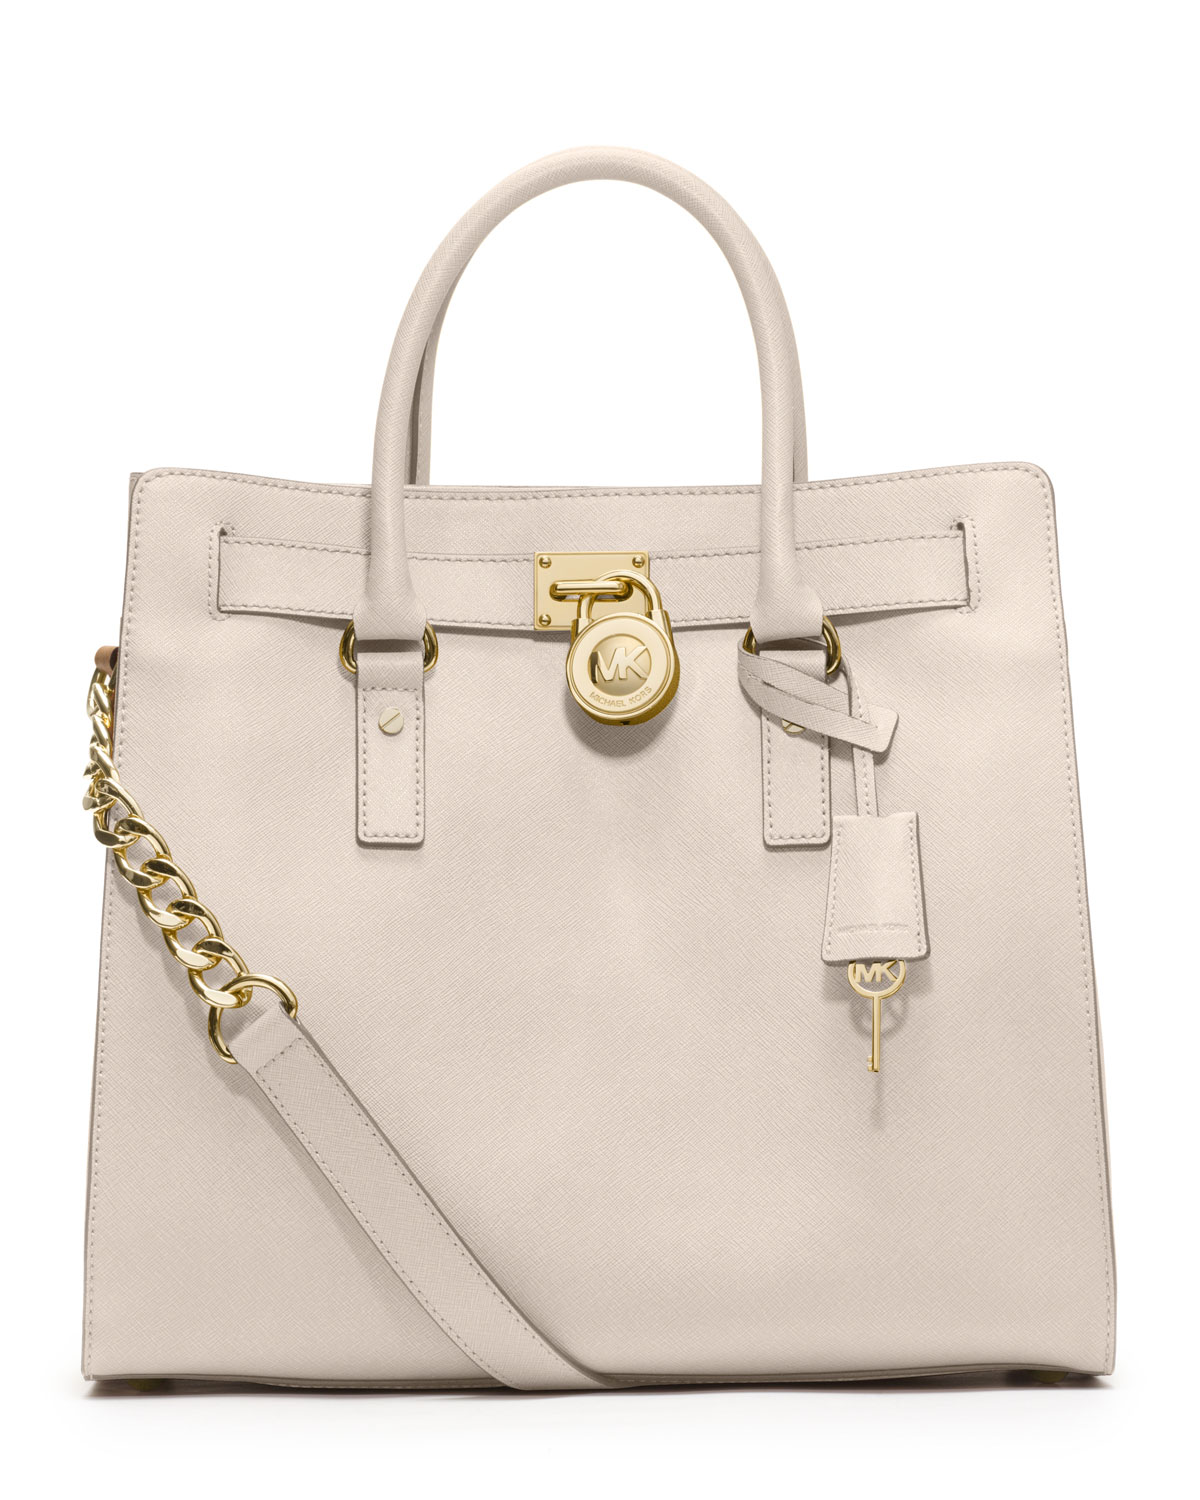 michael michael kors large hamilton saffiano tote in white vanilla. Black Bedroom Furniture Sets. Home Design Ideas